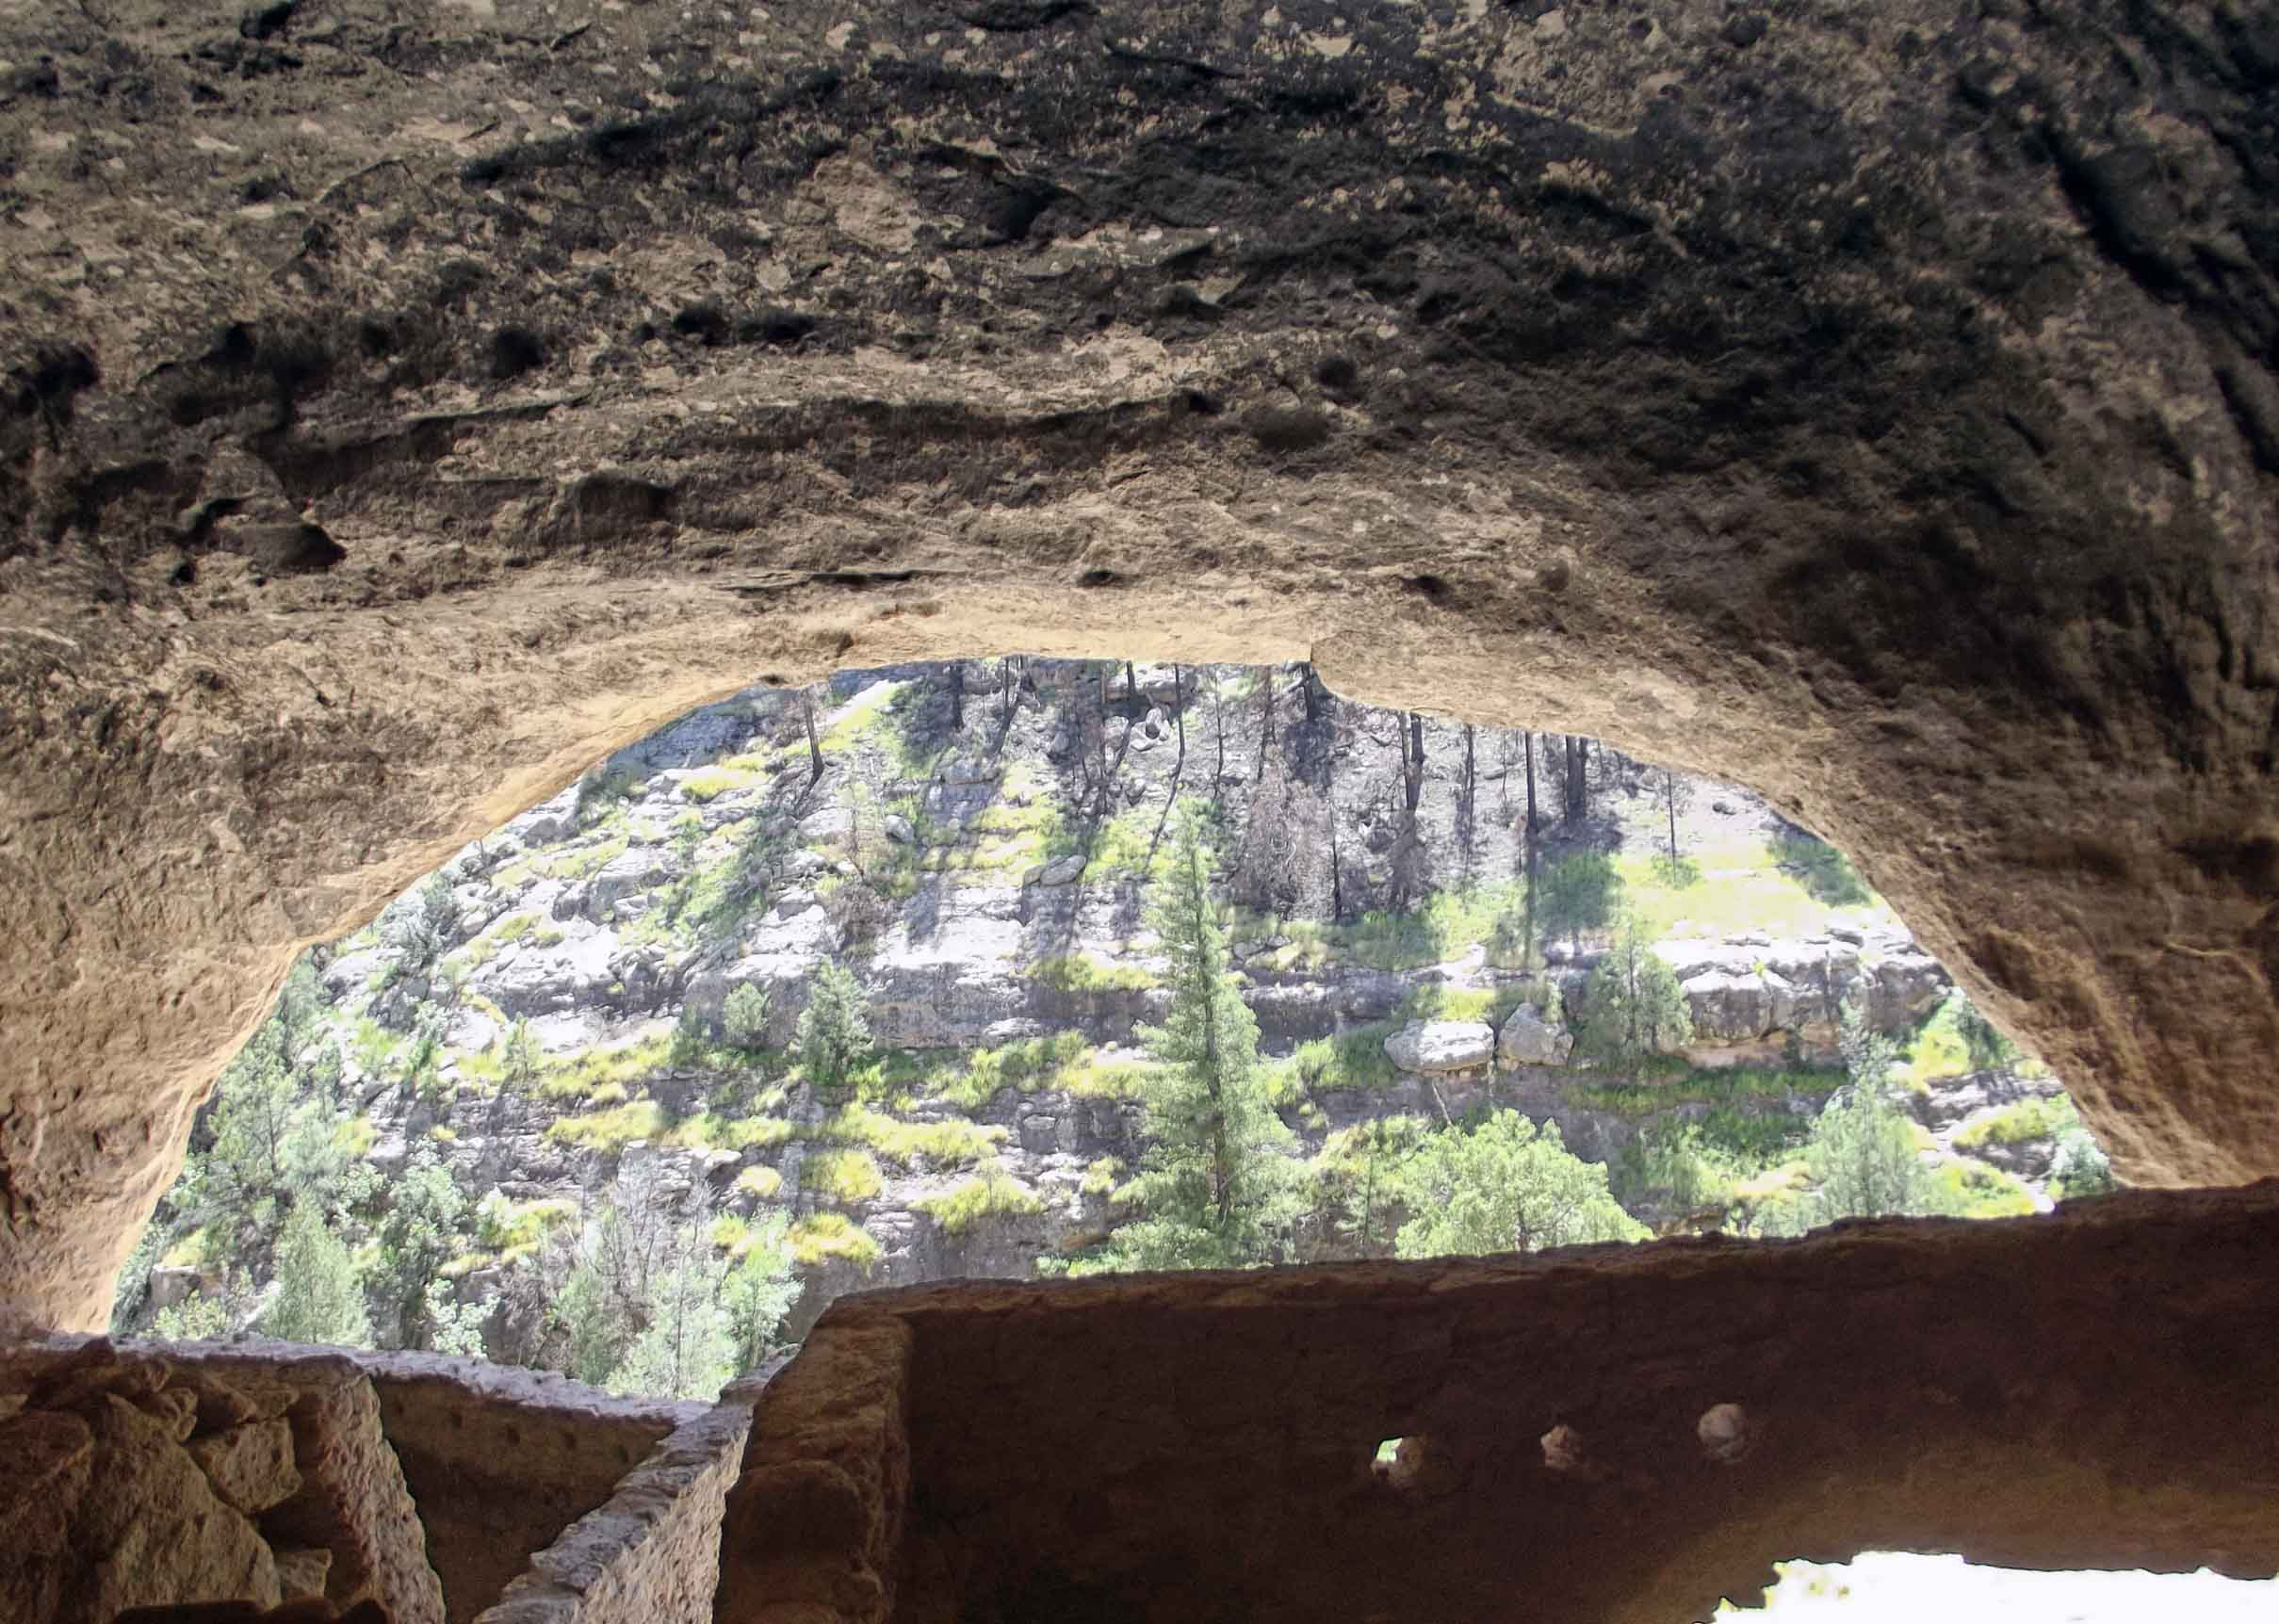 Looking out from a cave with walled structure in foreground